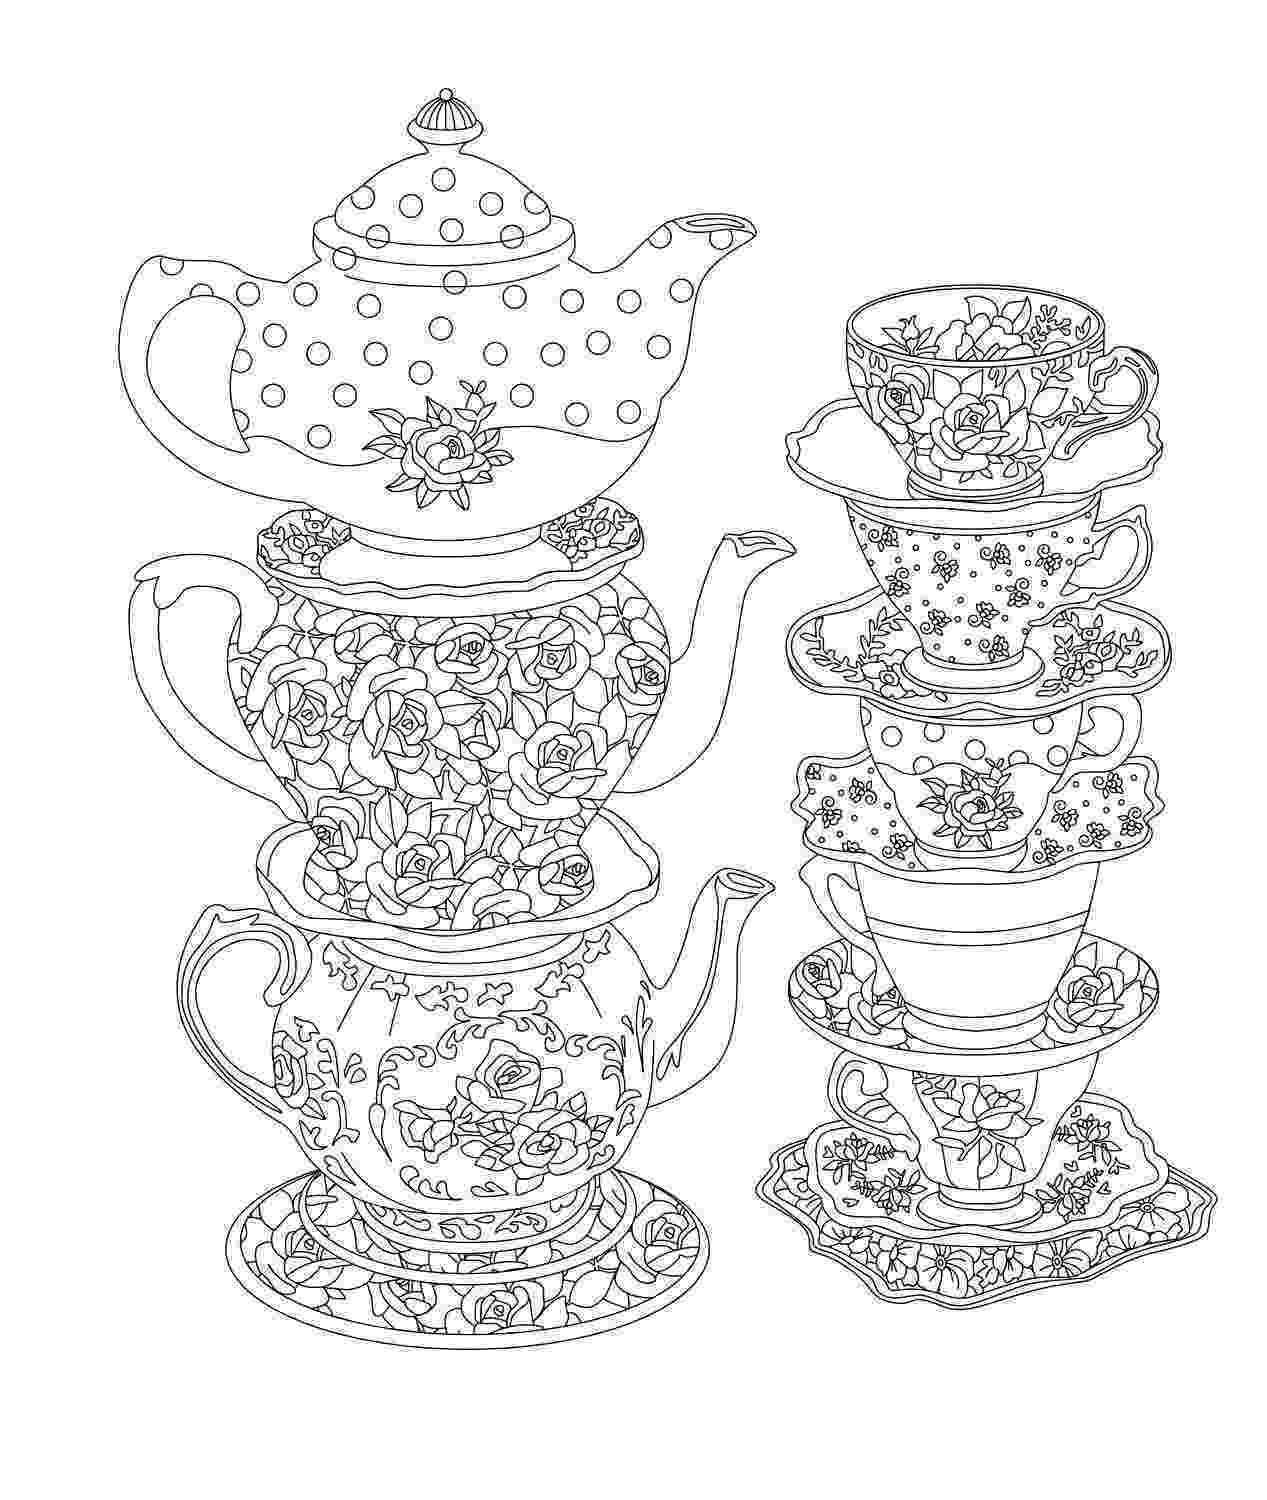 tea party coloring pages tea party coloring pages to download and print for free coloring tea pages party